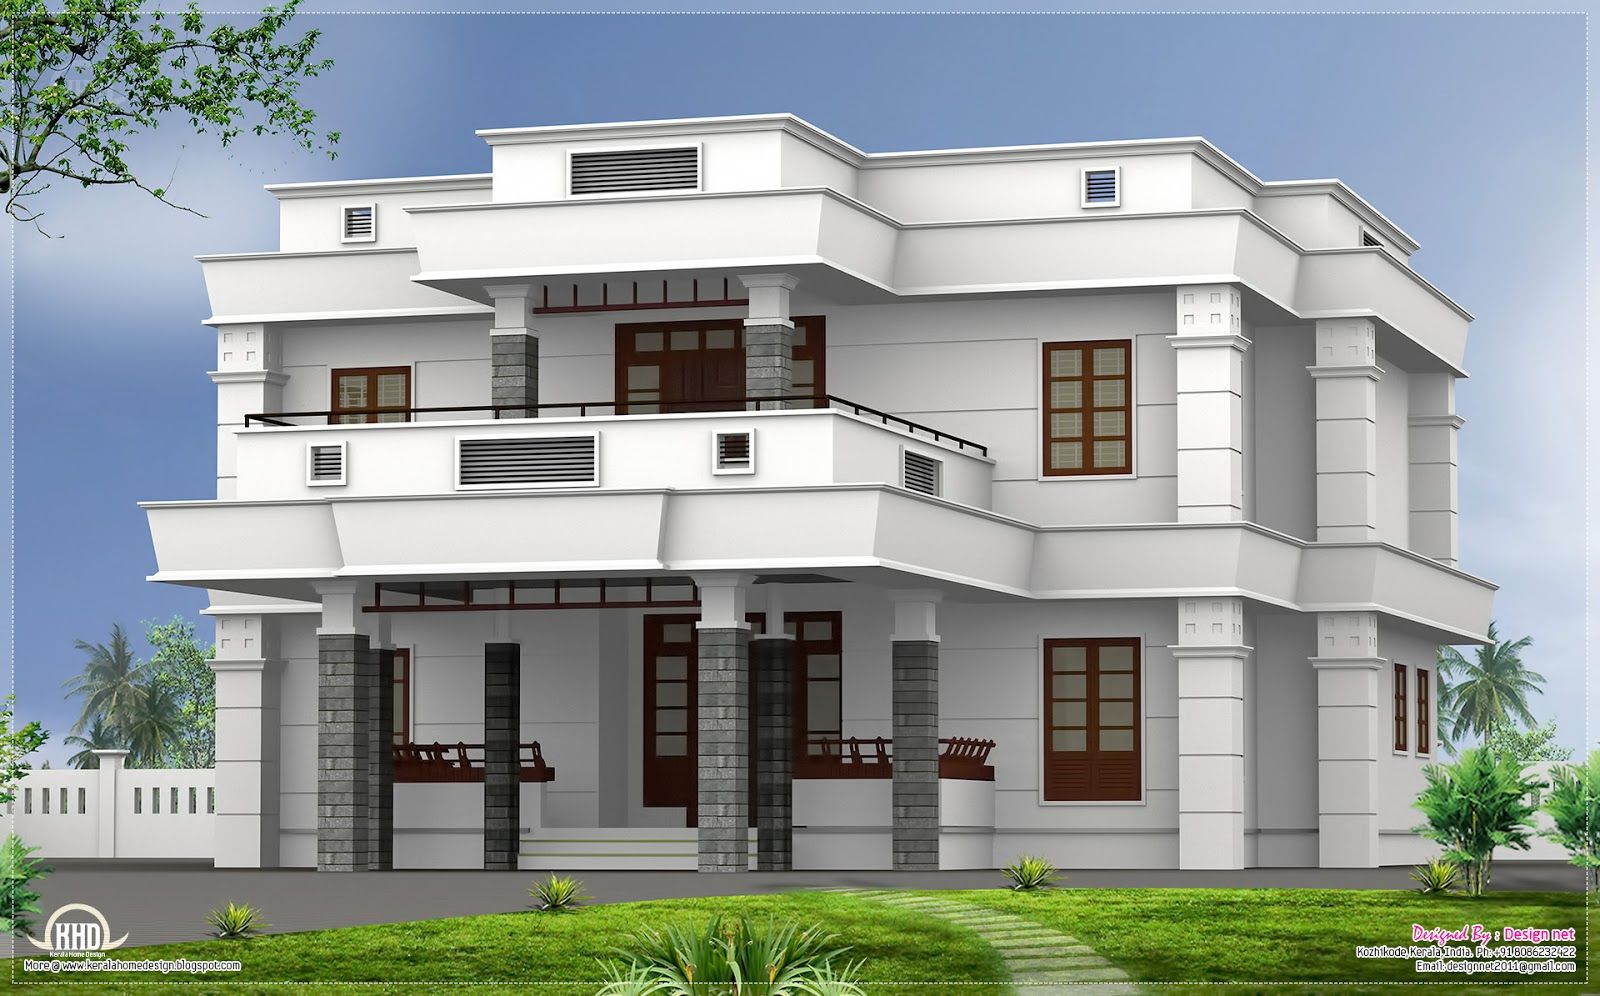 Flat roof homes designs bhk modern flat roof house for Modern house front design